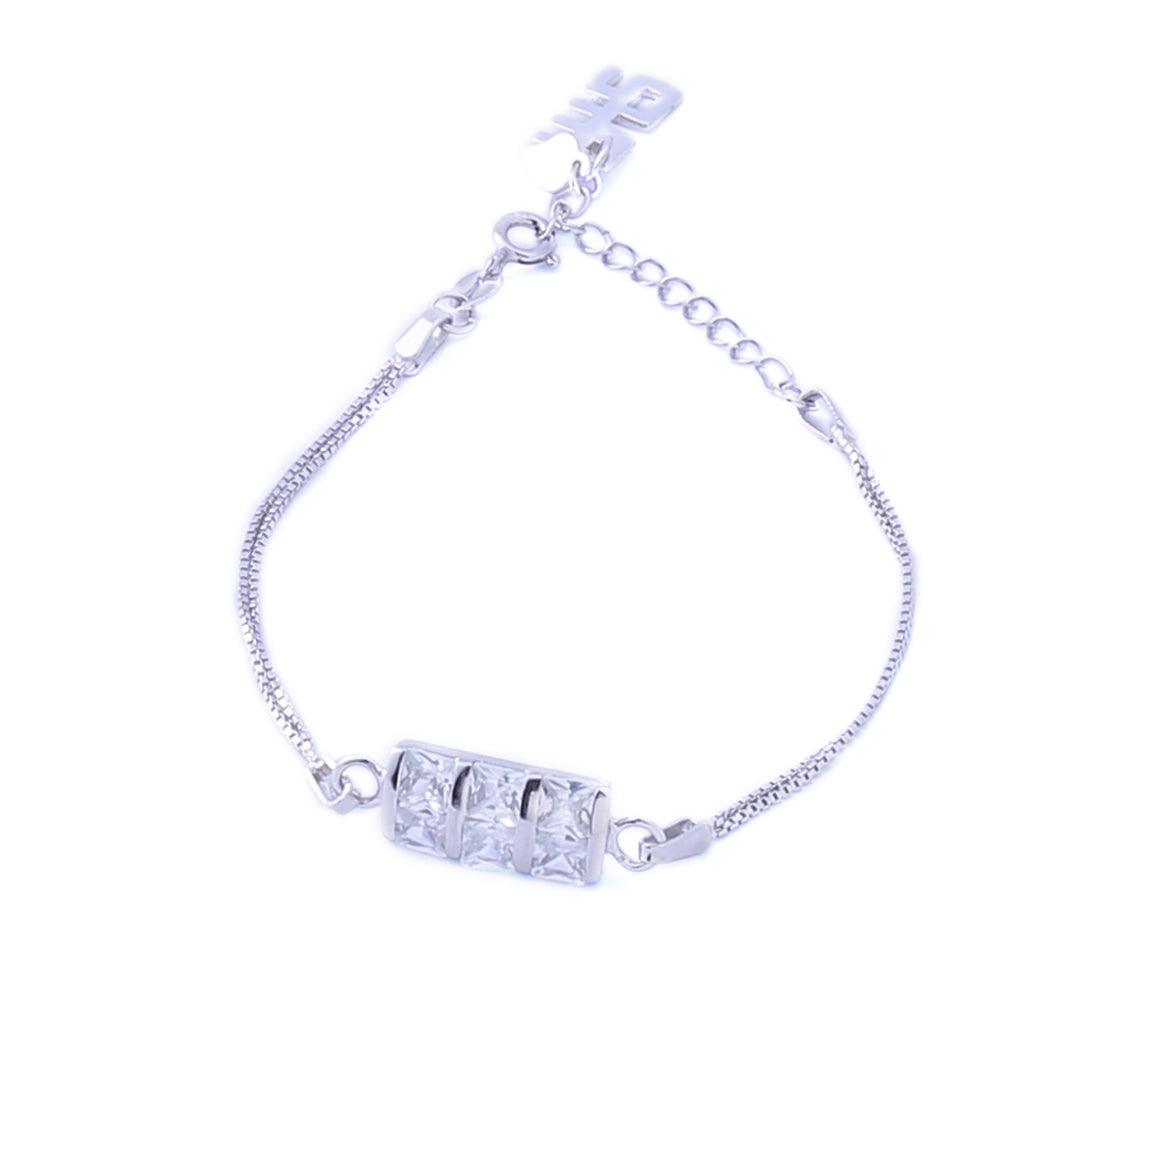 Sabyavi Bracelet Channel-Set Square Zircon Bracelet Sterling Silver